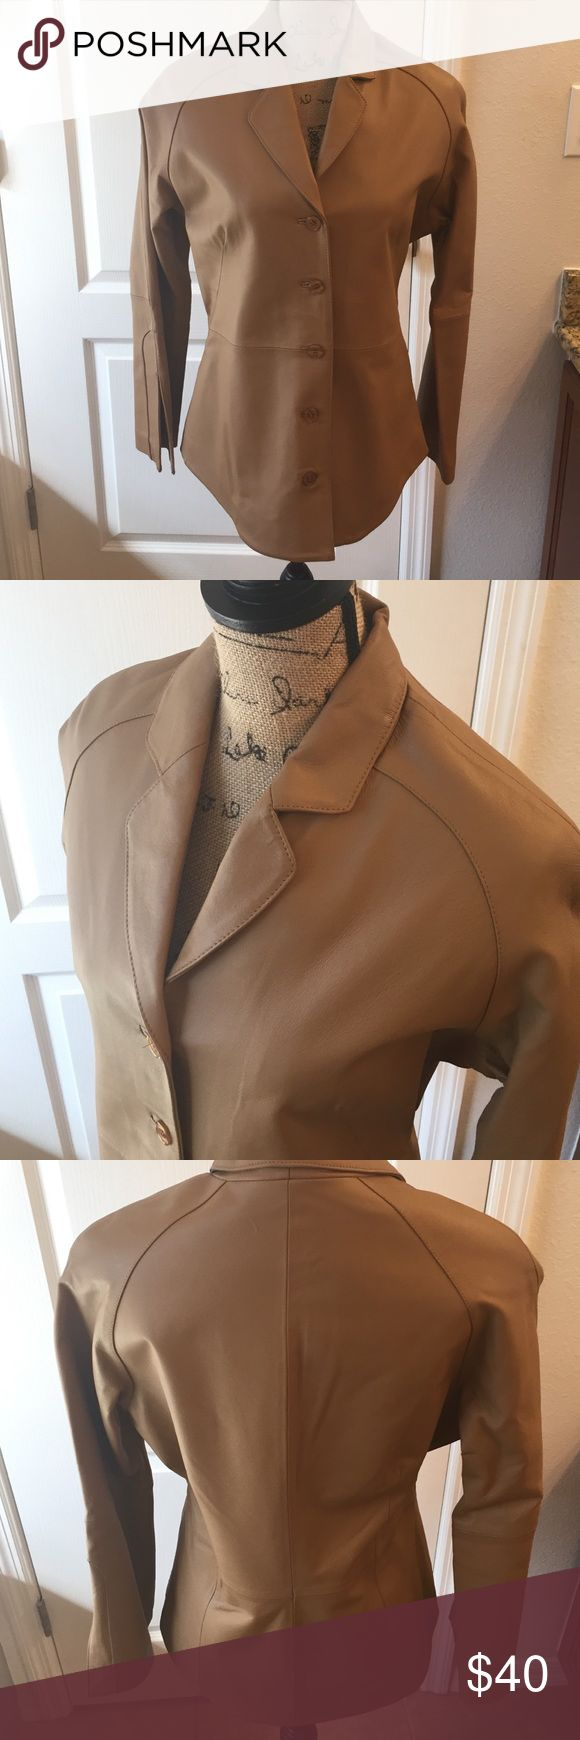 Tan Leather Jacket Tan leather jacket is perfect for a night out on the town.  Comes from a smoke and pet free home and is in perfect condition, NWOT & very faltering on!  Questions please ask - Bundle and save!!! Jackets & Coats